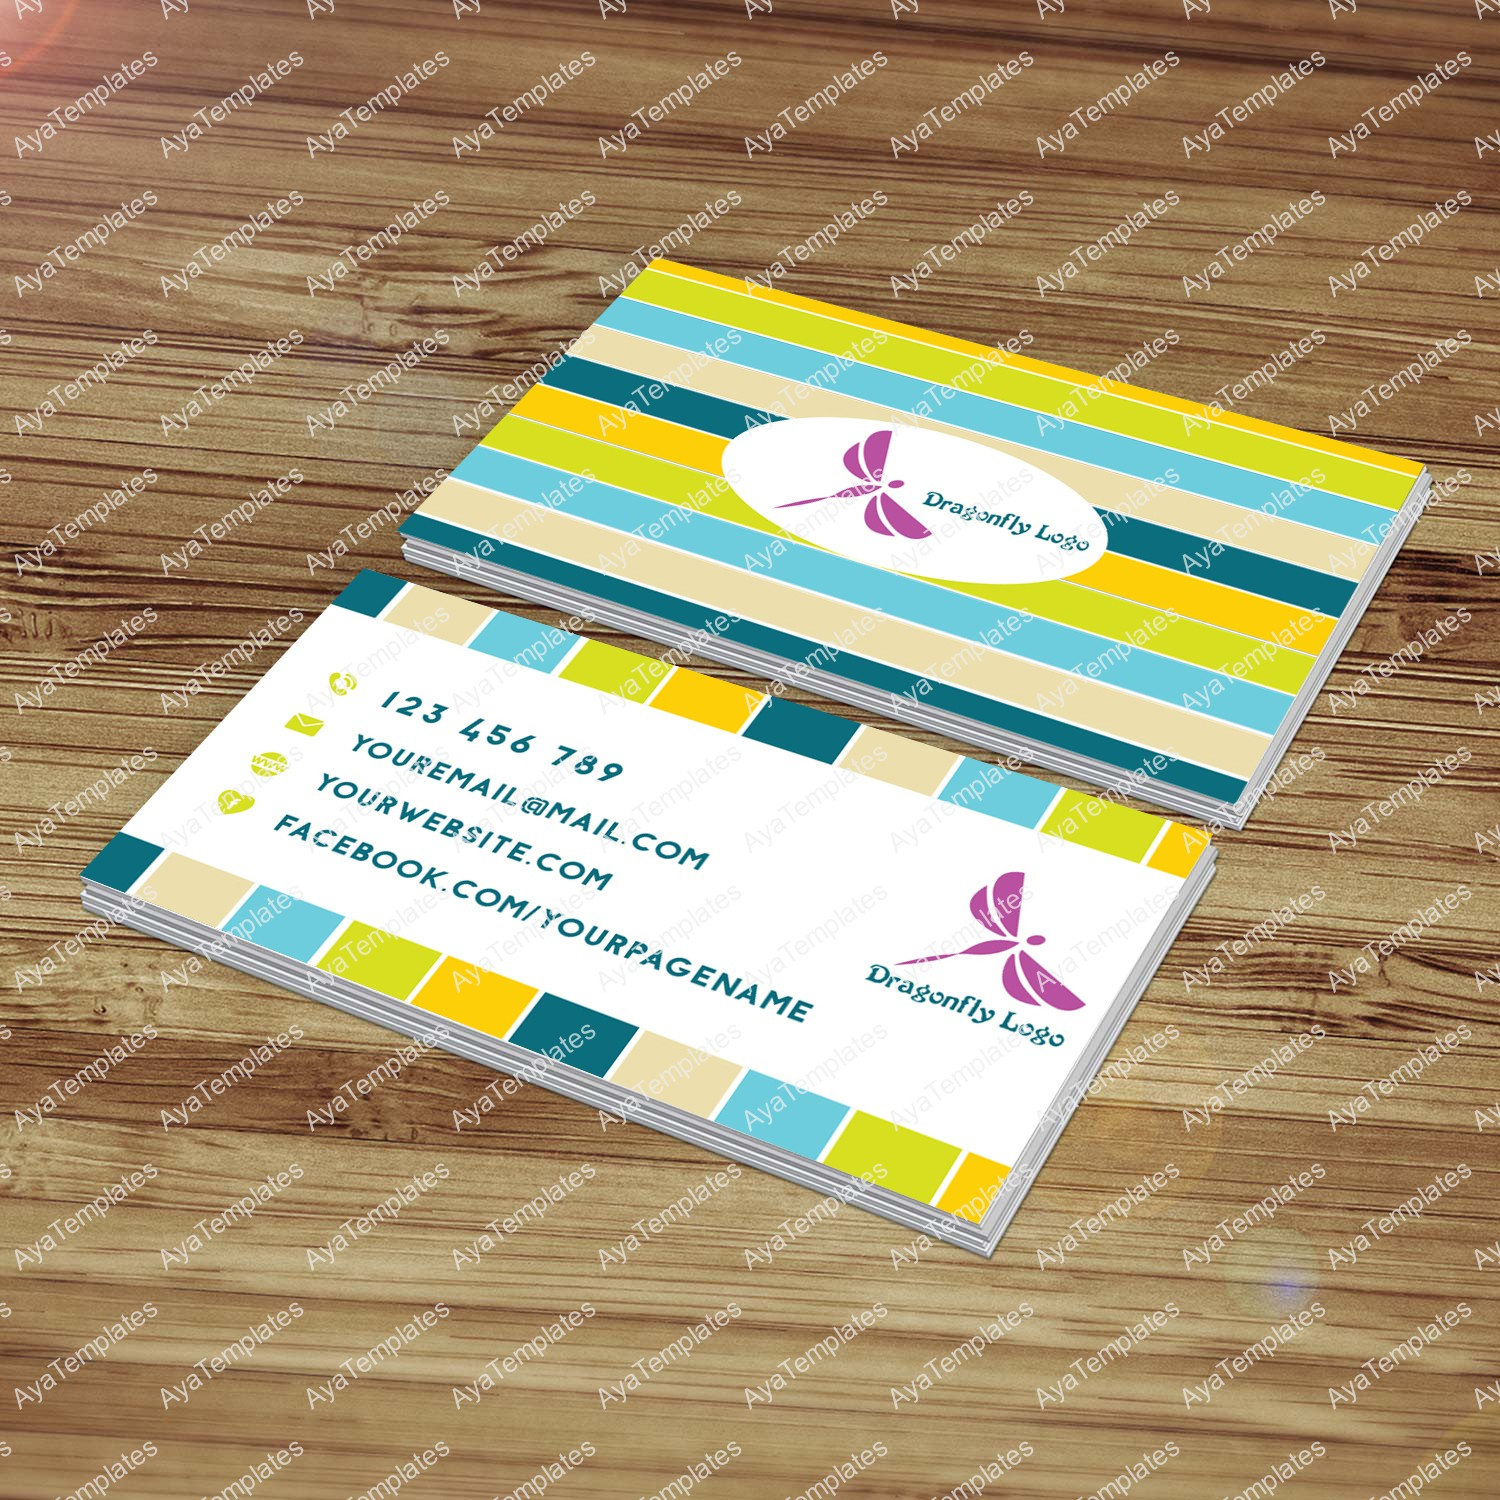 home business card designs business card template design